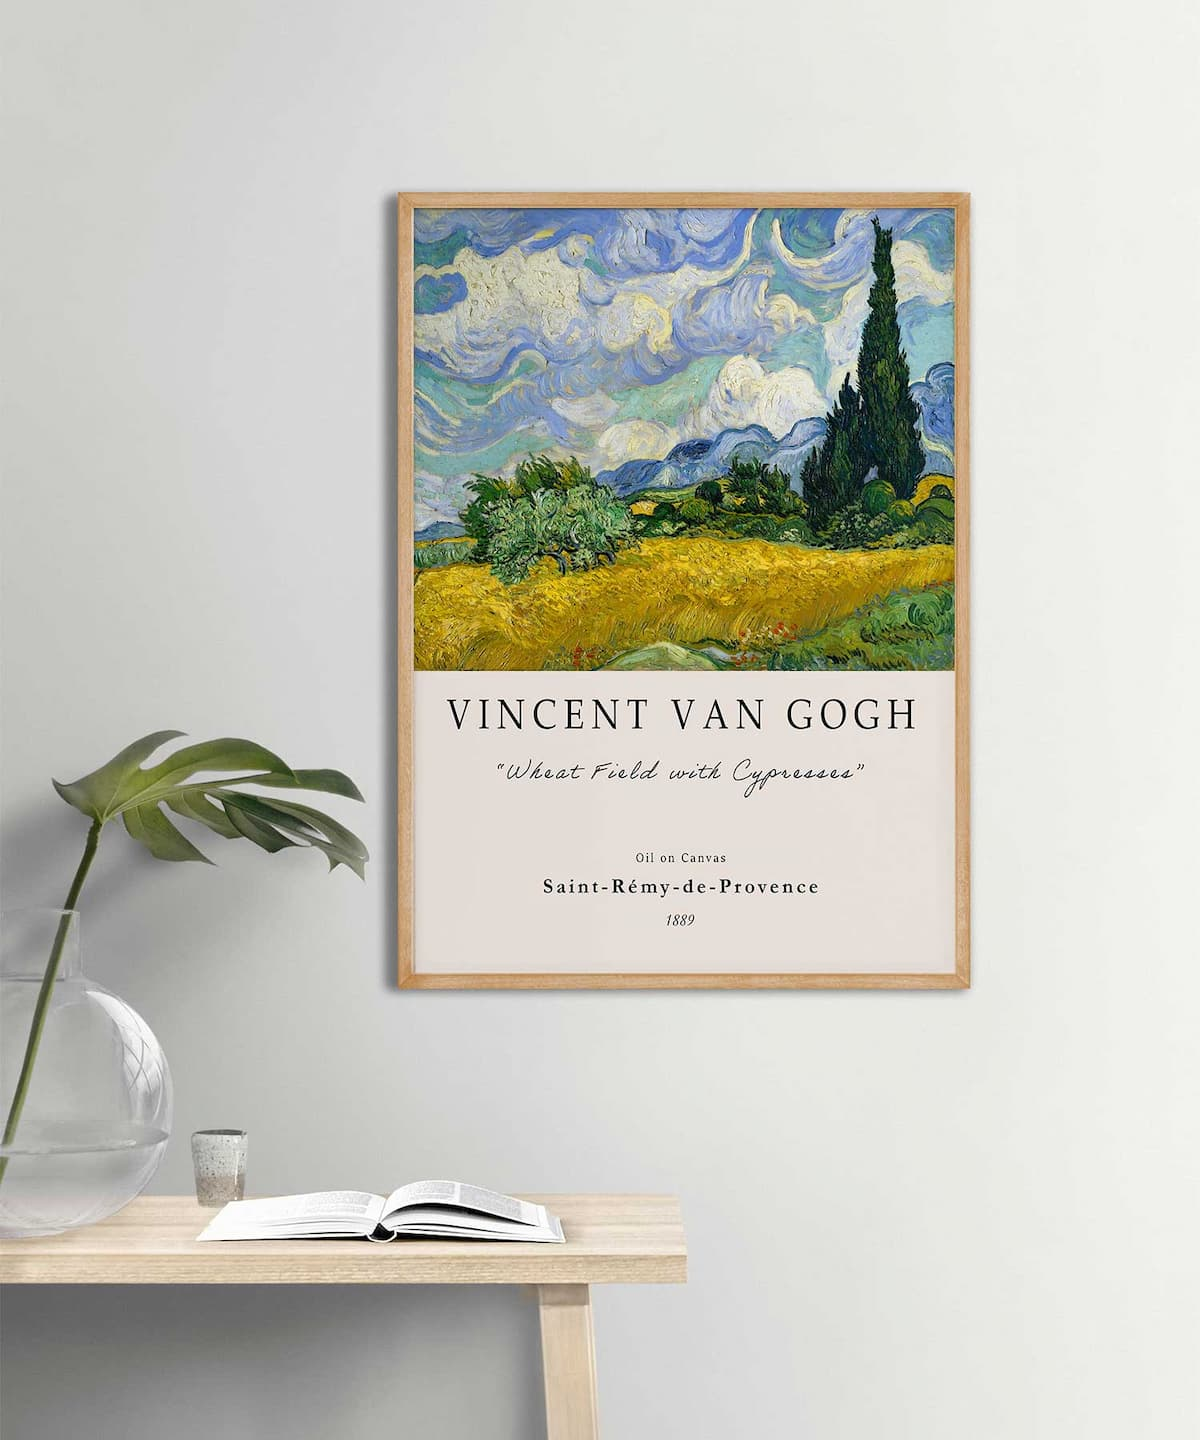 Van-Gogh-Wheat-Field-with-Cypresses-Poster-Poster-Wooden-Frame-Duwart